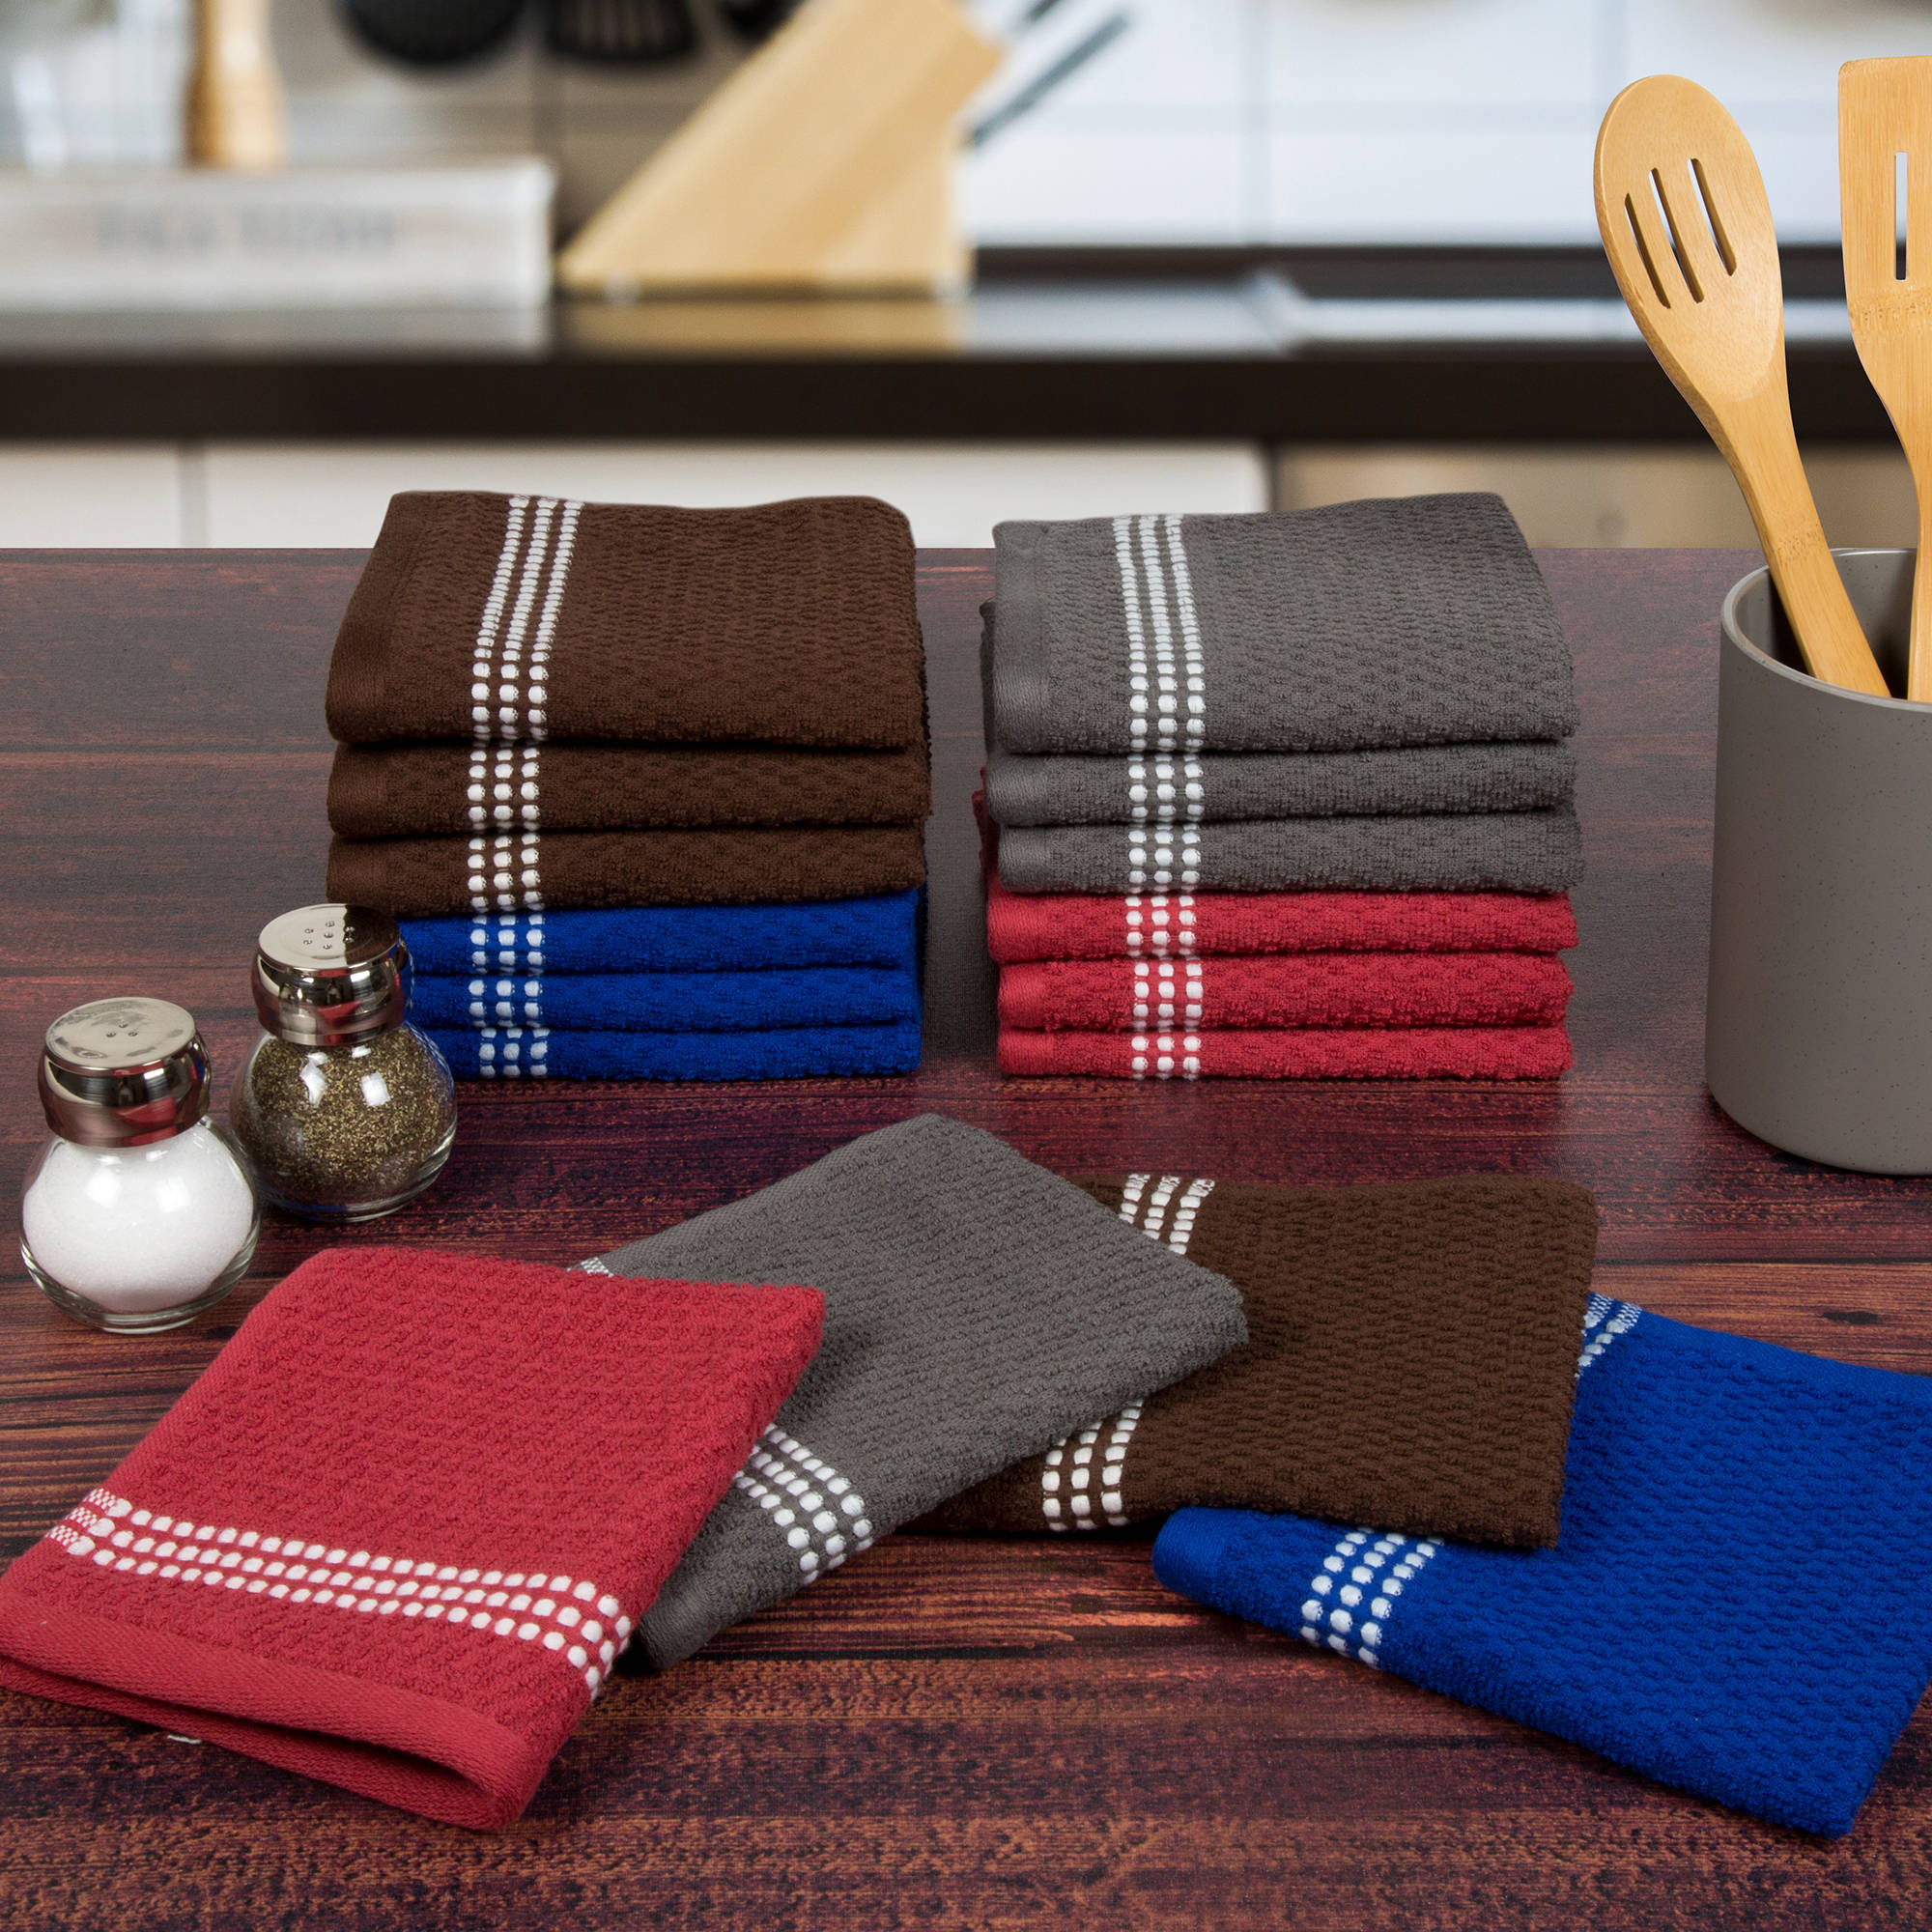 Somerset Home 16 Piece Cotton Popcorn Terry Kitchen Towel Washcloth Set